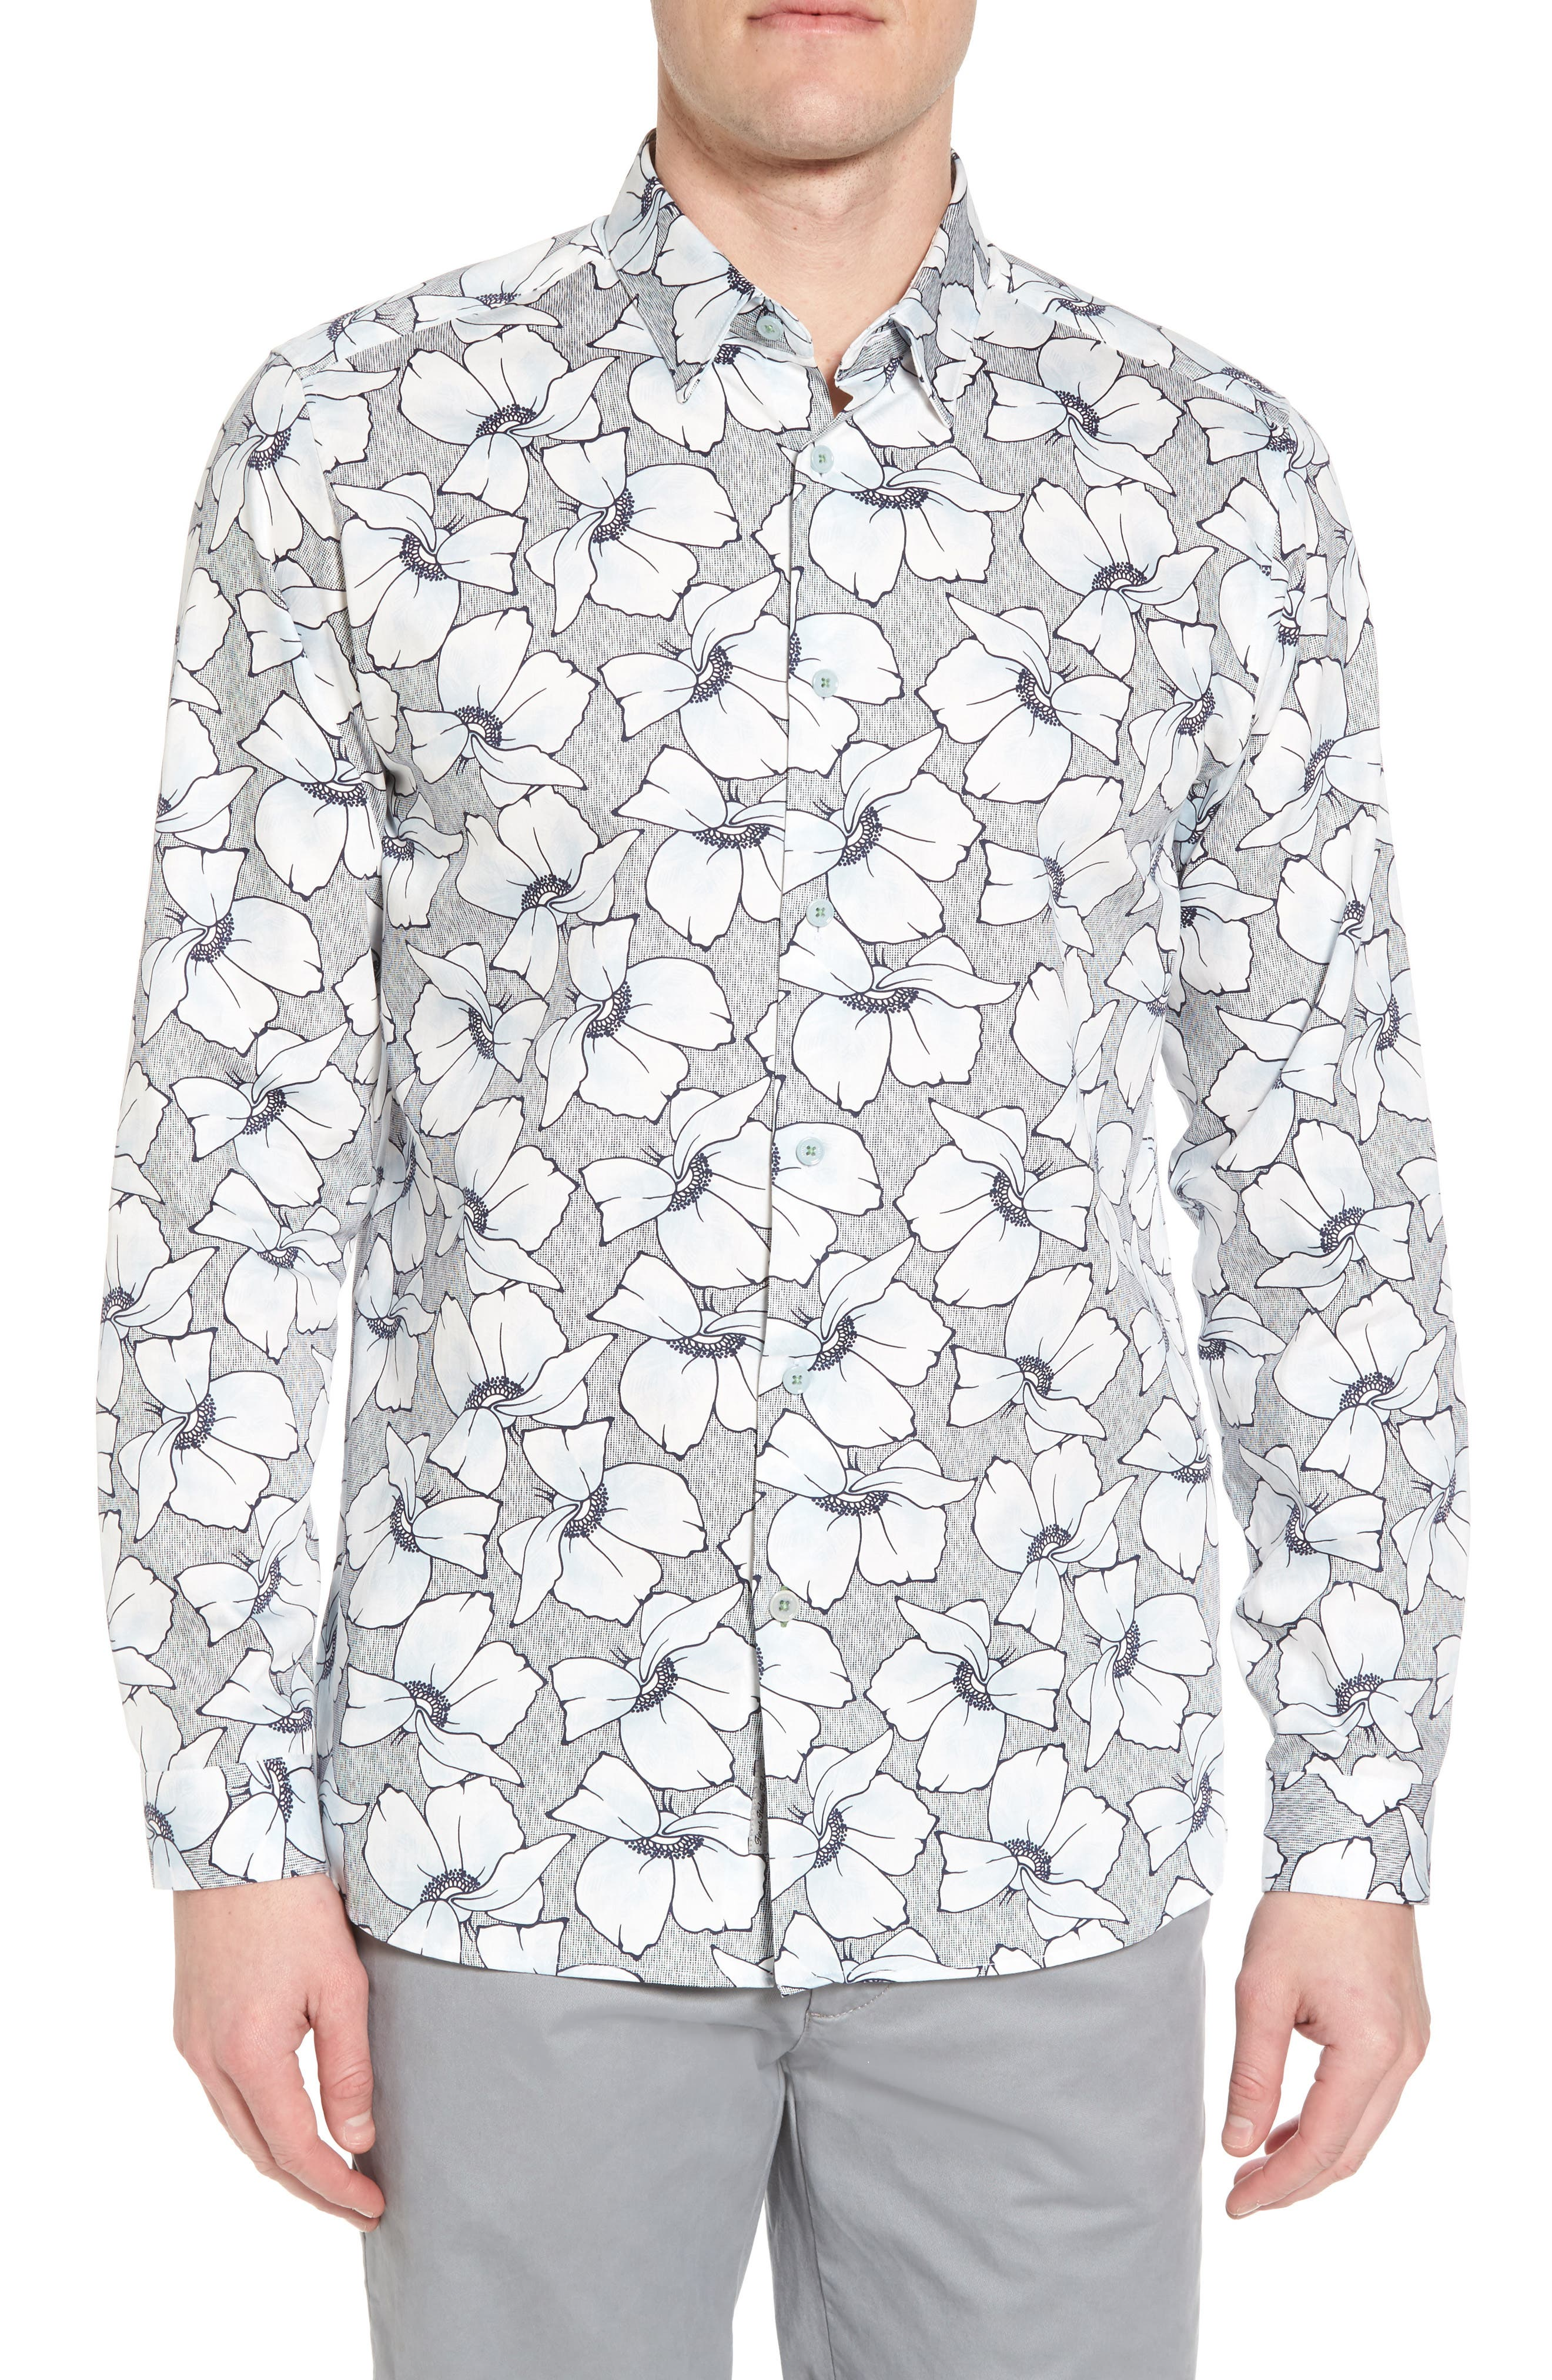 Ligflo Trim Fit Floral Print Sport Shirt,                             Main thumbnail 1, color,                             450